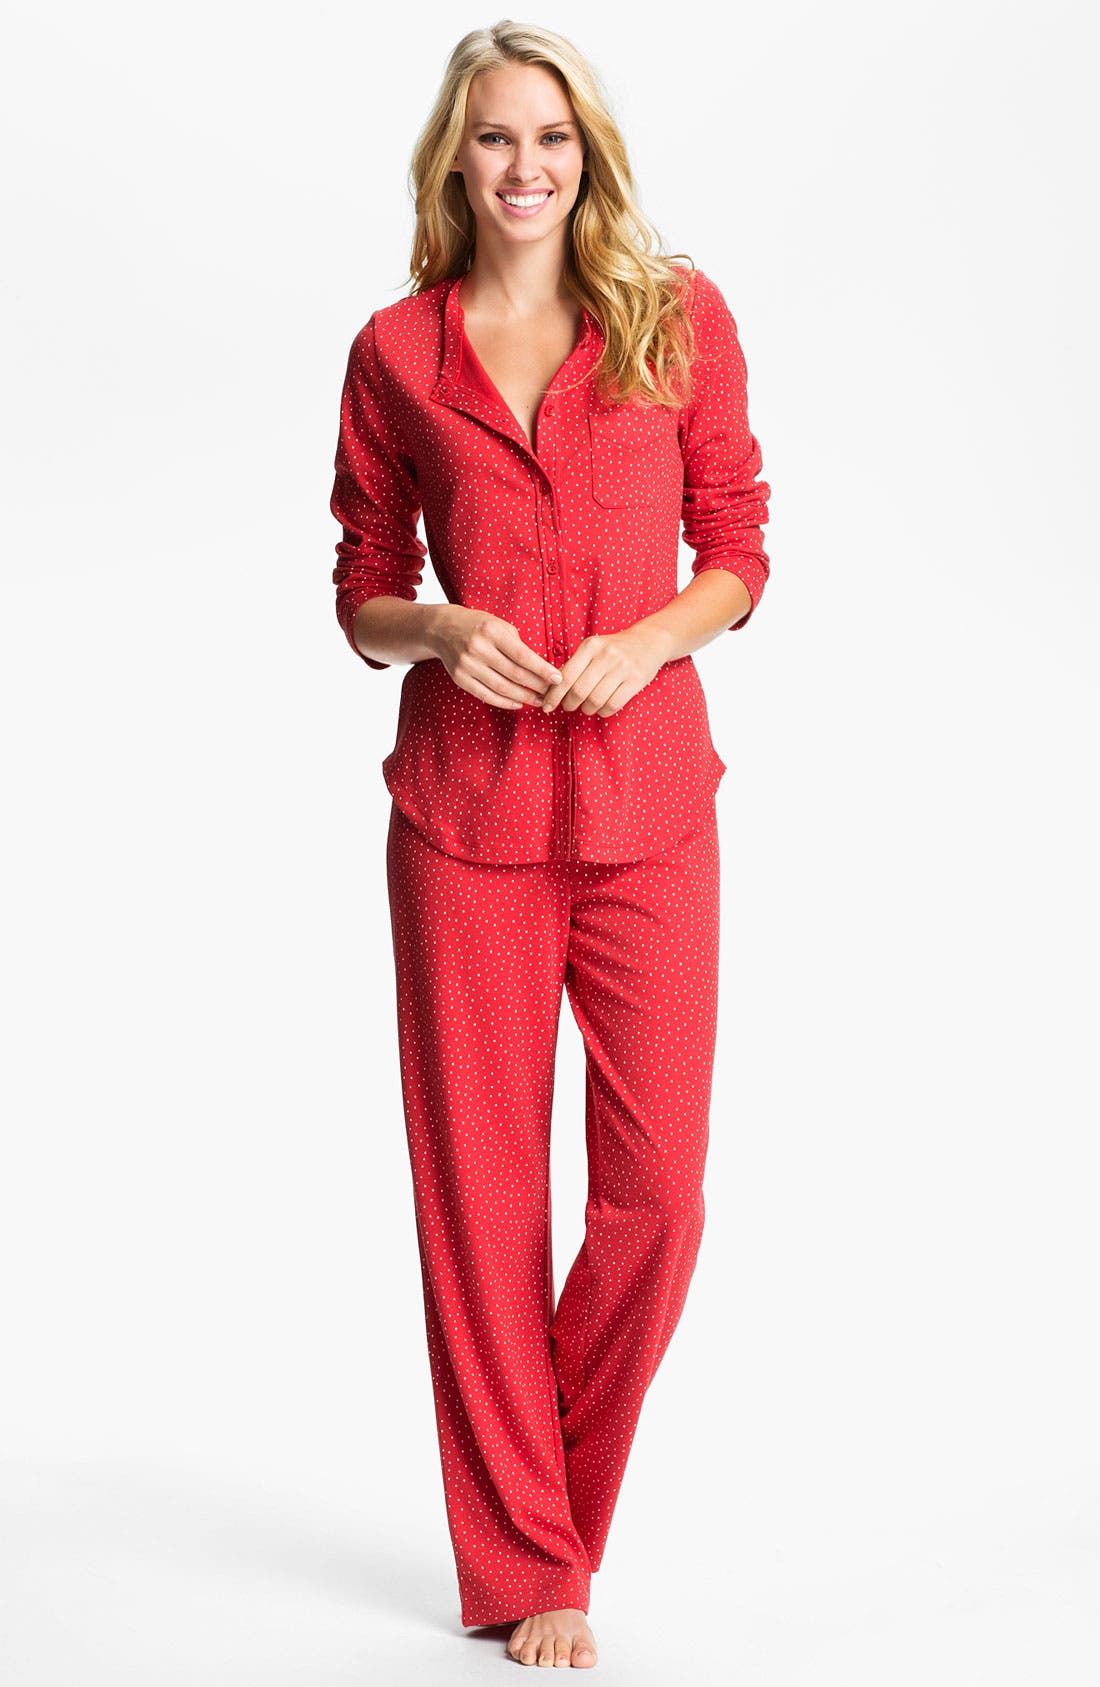 Main Image - Carole Hochman Designs Interlock Knit Pajamas